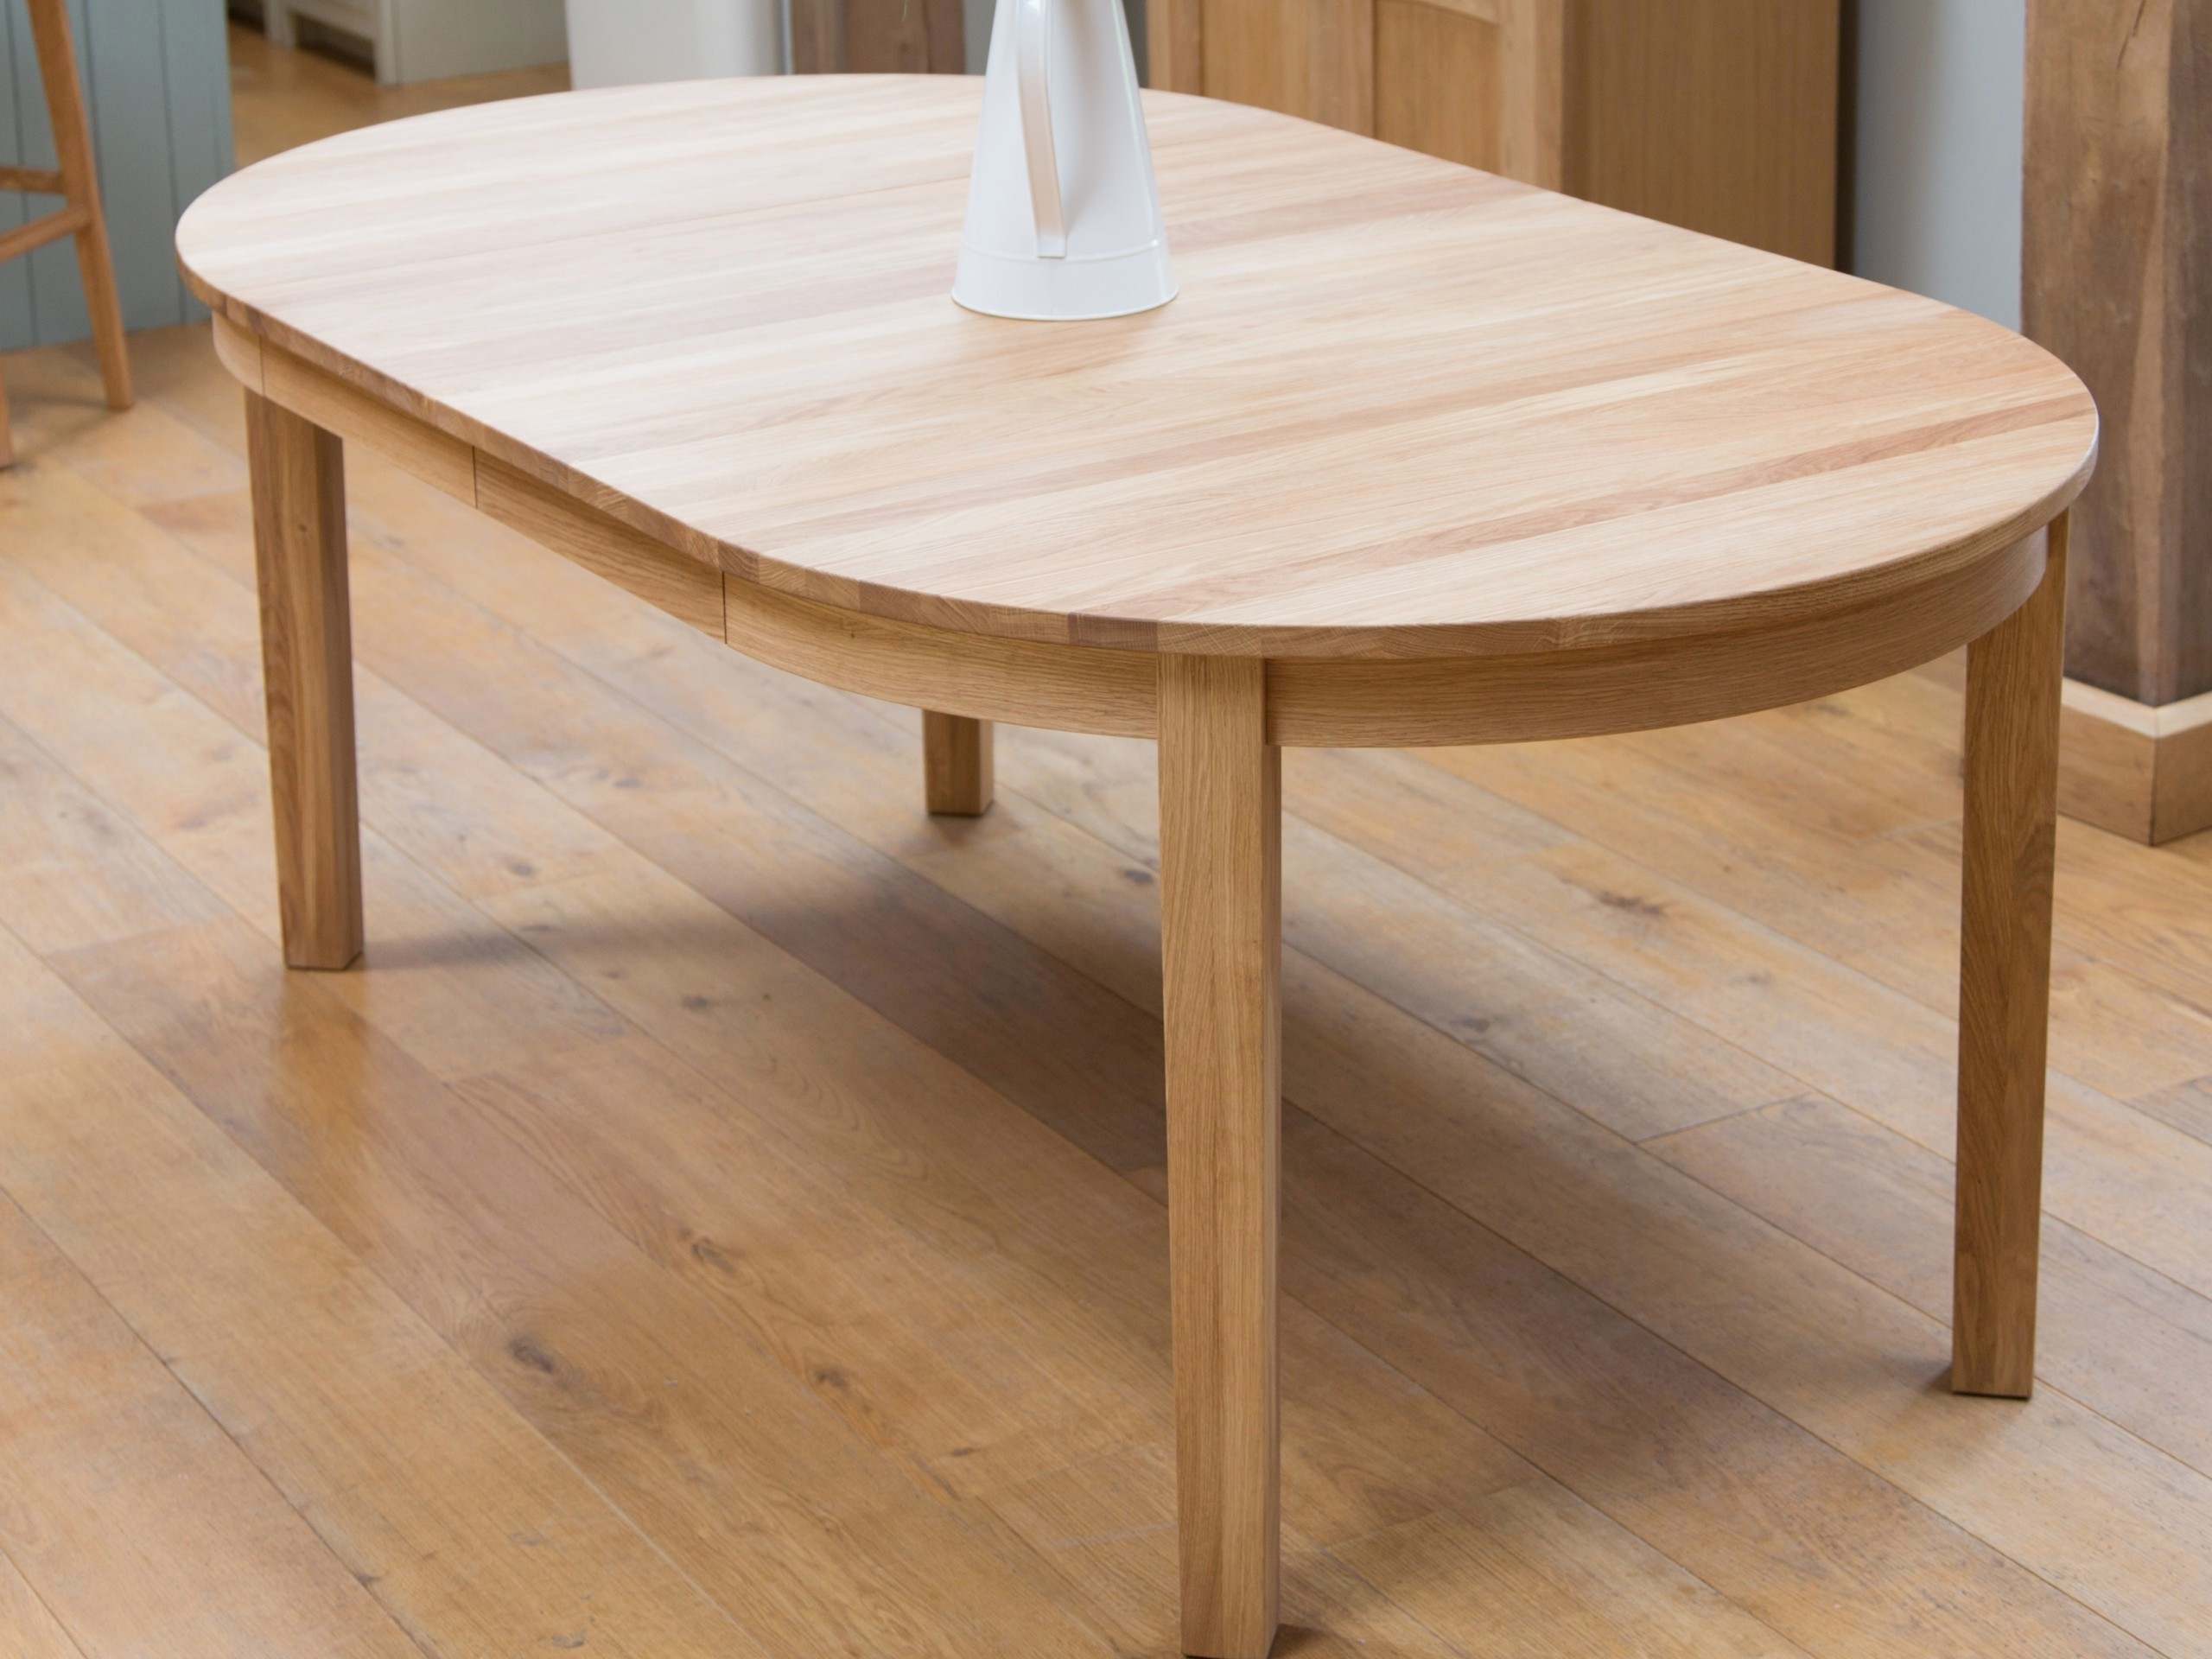 Best And Newest White Oval Extending Dining Table Lovely English Country Oval Dining Pertaining To Magnolia Home English Country Oval Dining Tables (View 13 of 25)